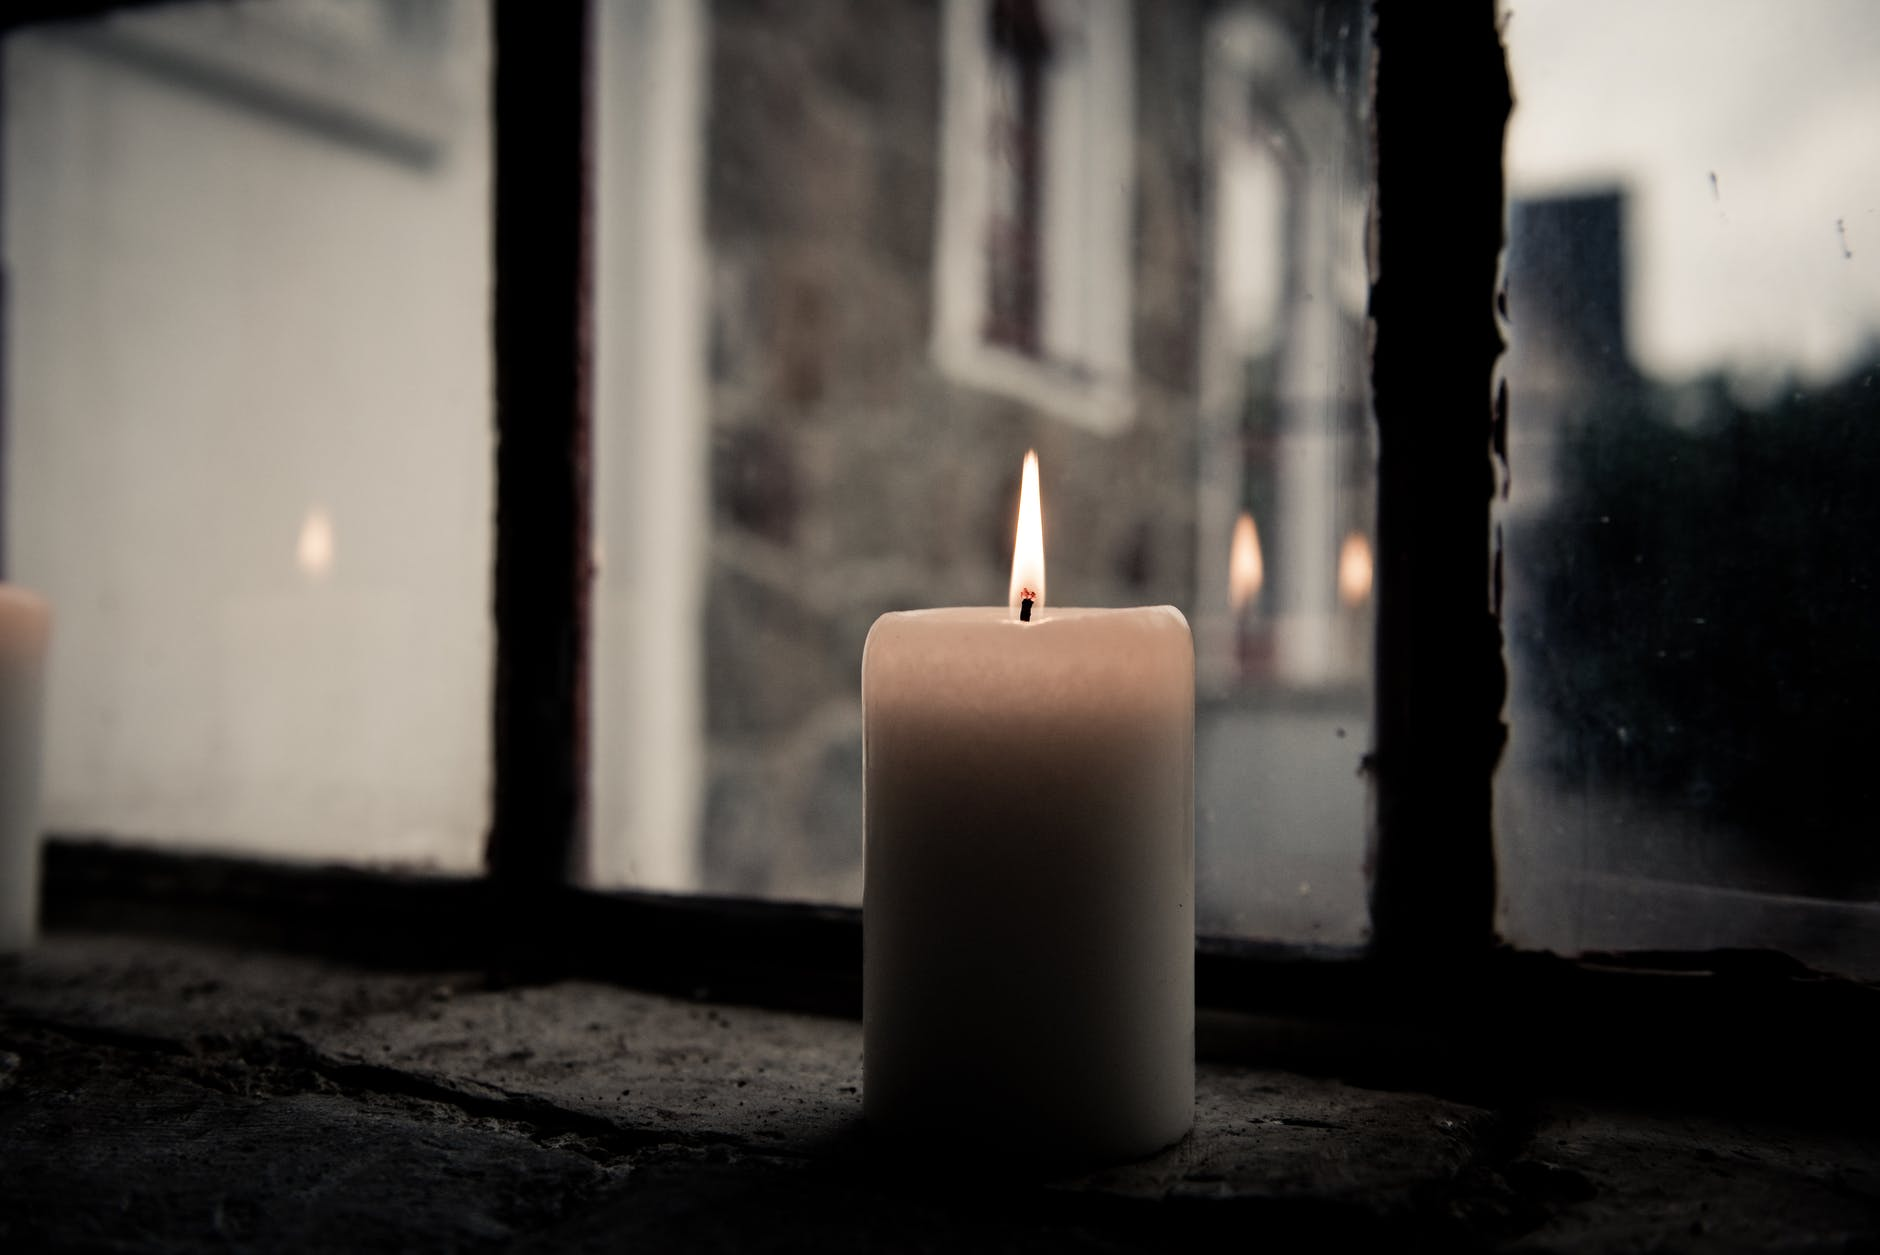 pillar candle near clear glass window